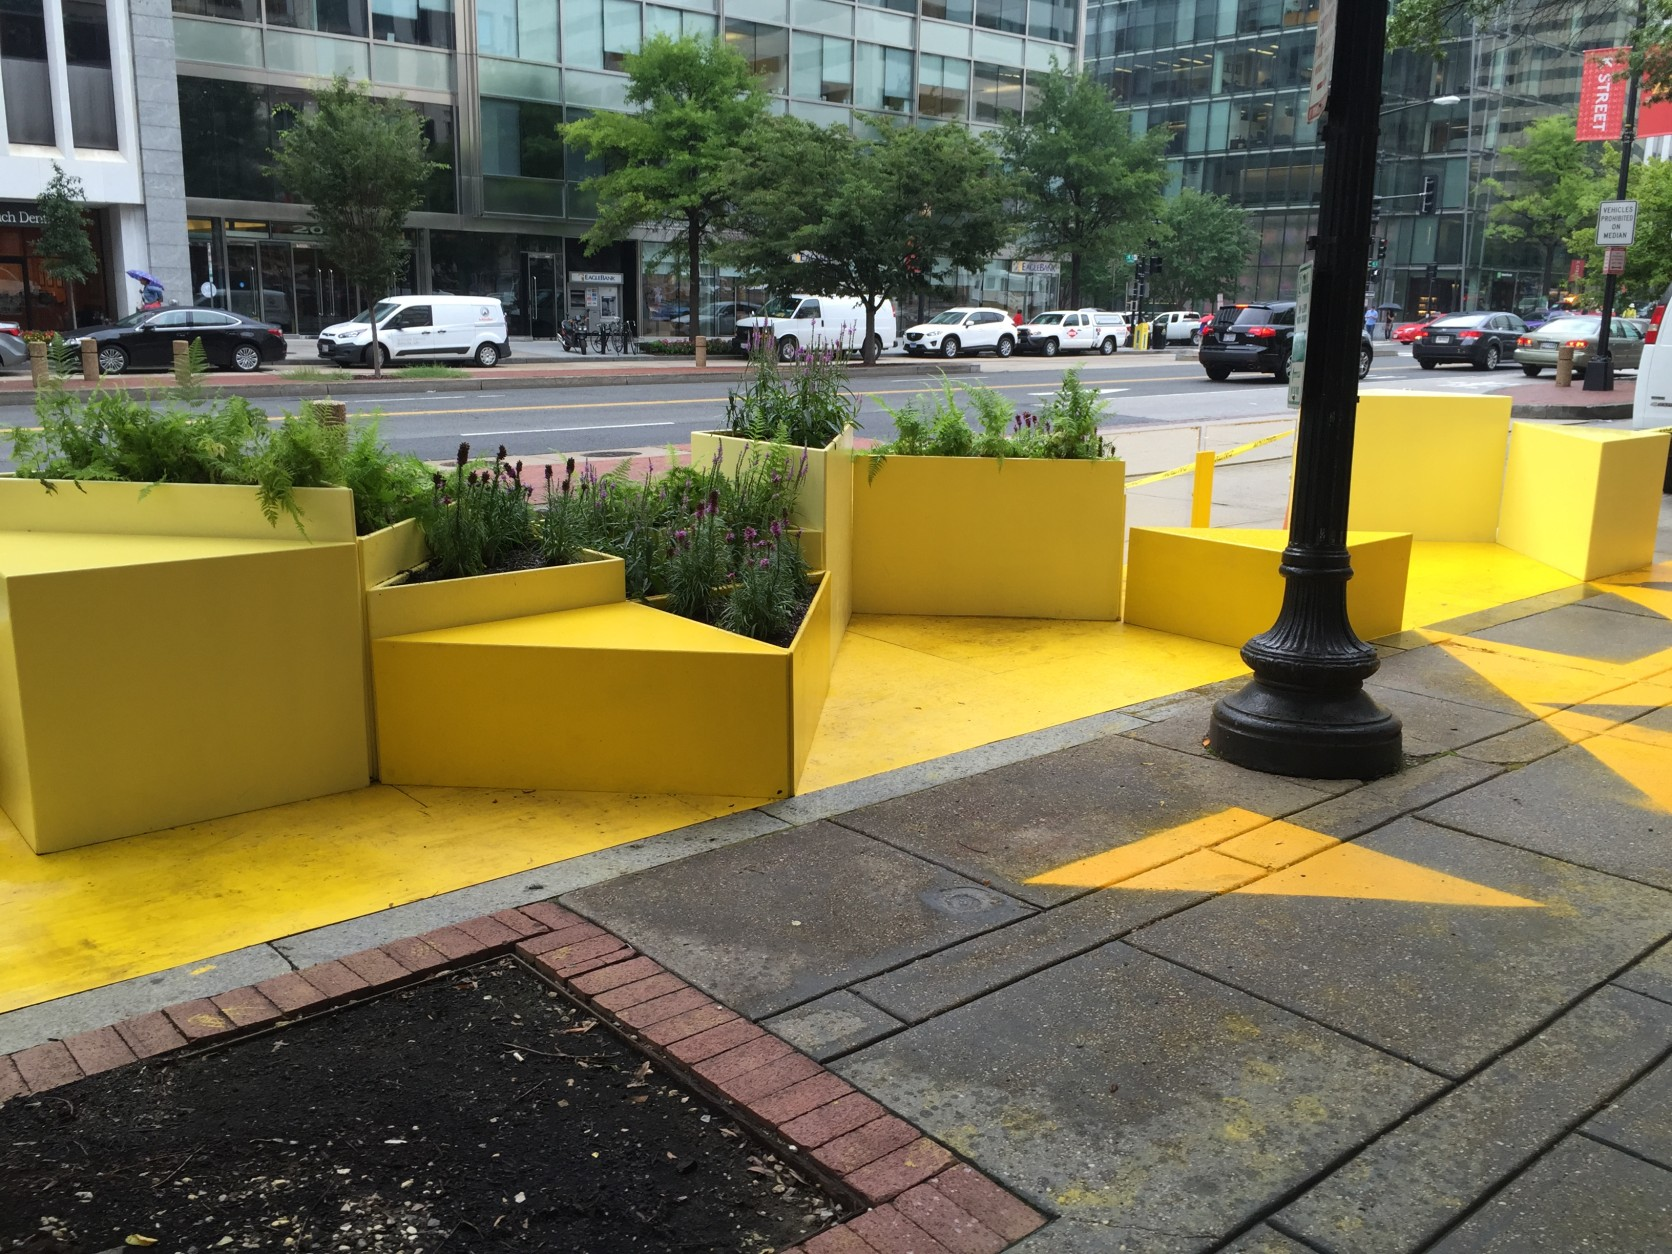 The parklet takes up two metered spaces along the K Street Corridor.